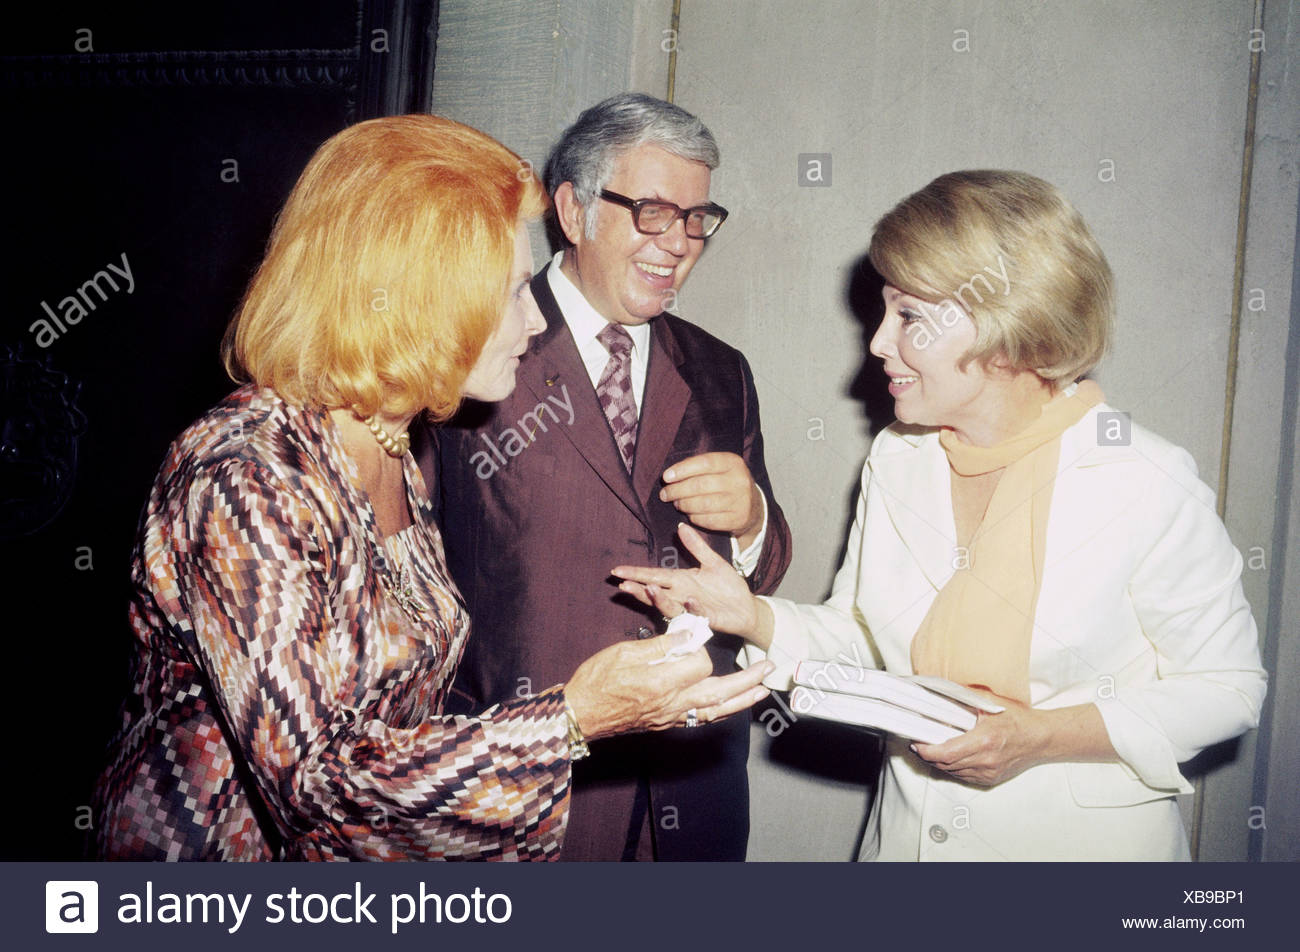 Kindler, Helmut, 3.12.1912 - 15.9.2008, German publisher, with wife Nina and Anneliese, Rothenberger during introduction of her - Stock Image